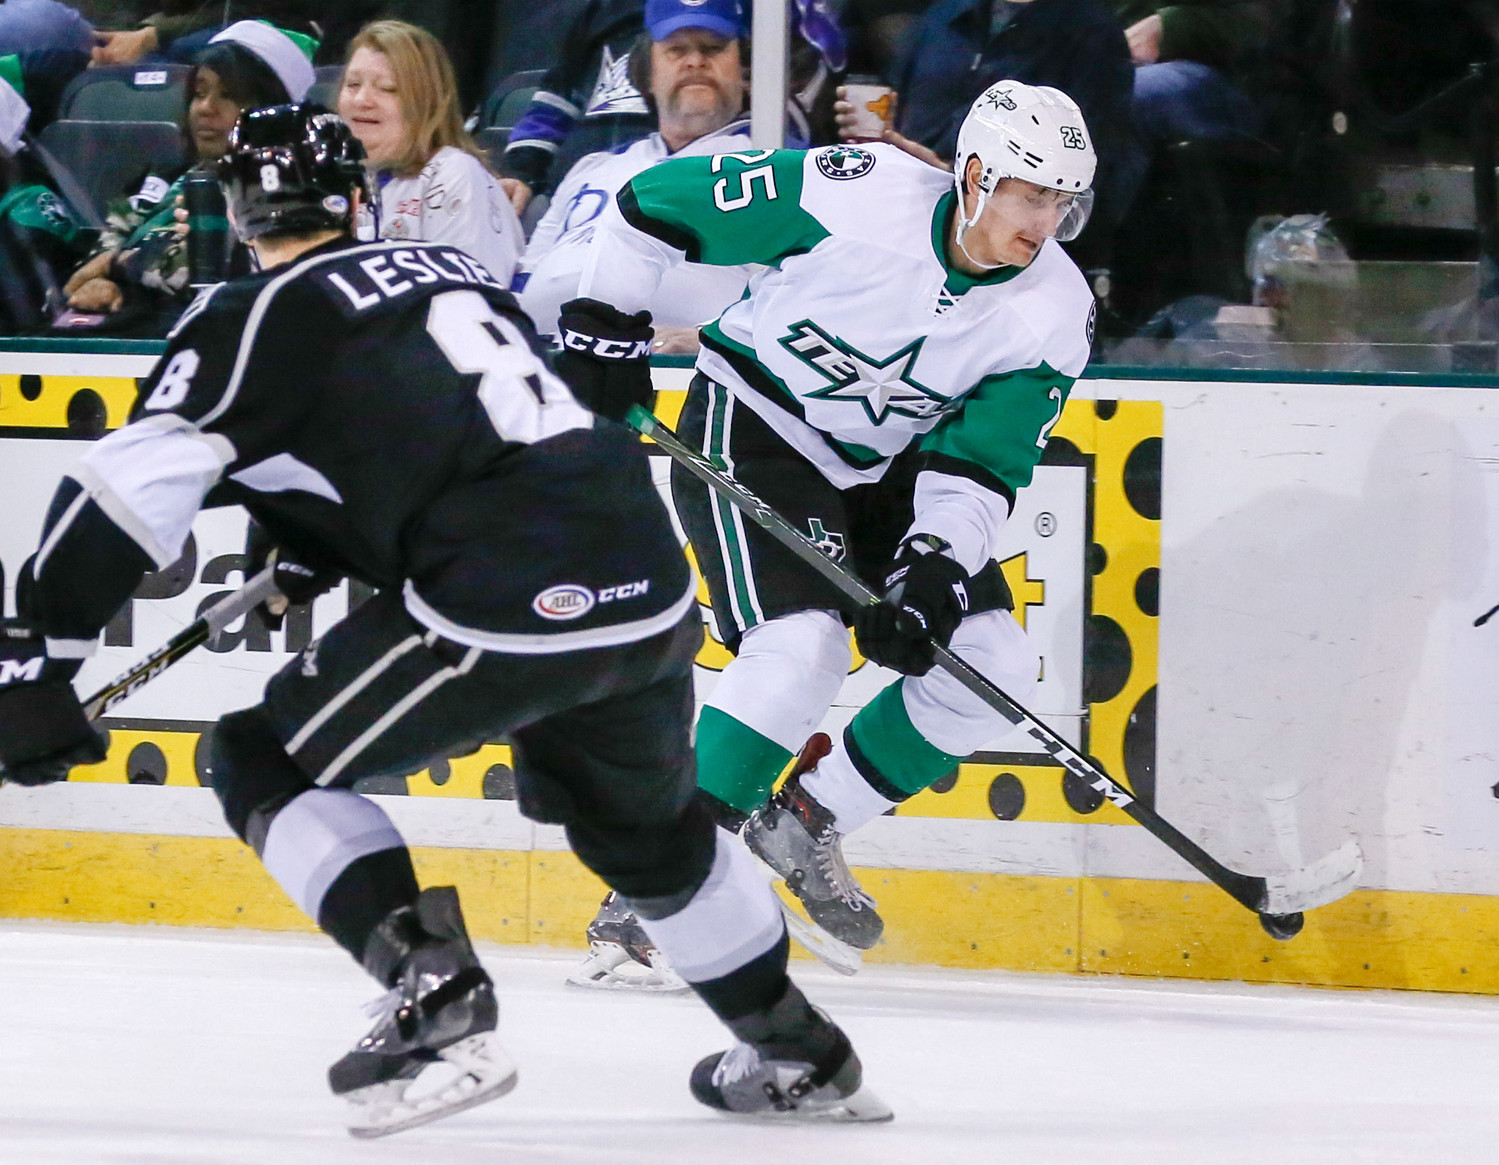 Denis Gurianov scored for Texas to tie the game in the third period, but the Texas Stars fell to the Chicago Wolves on the road Tuesday afternoon.